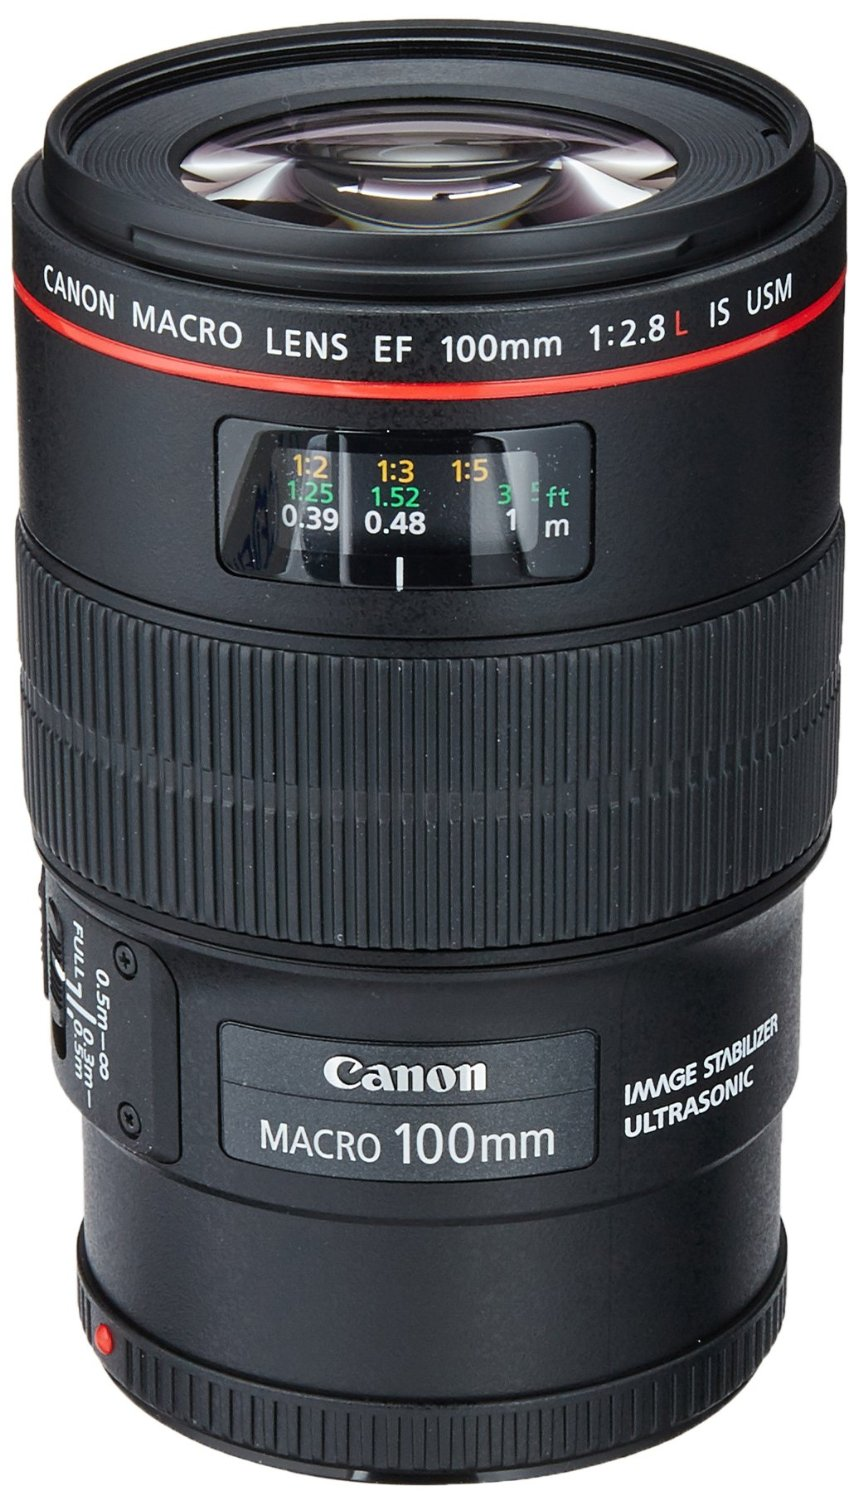 10 Best Macro Lenses for Canon DSLRs in 2018 | Ratings & Reviews